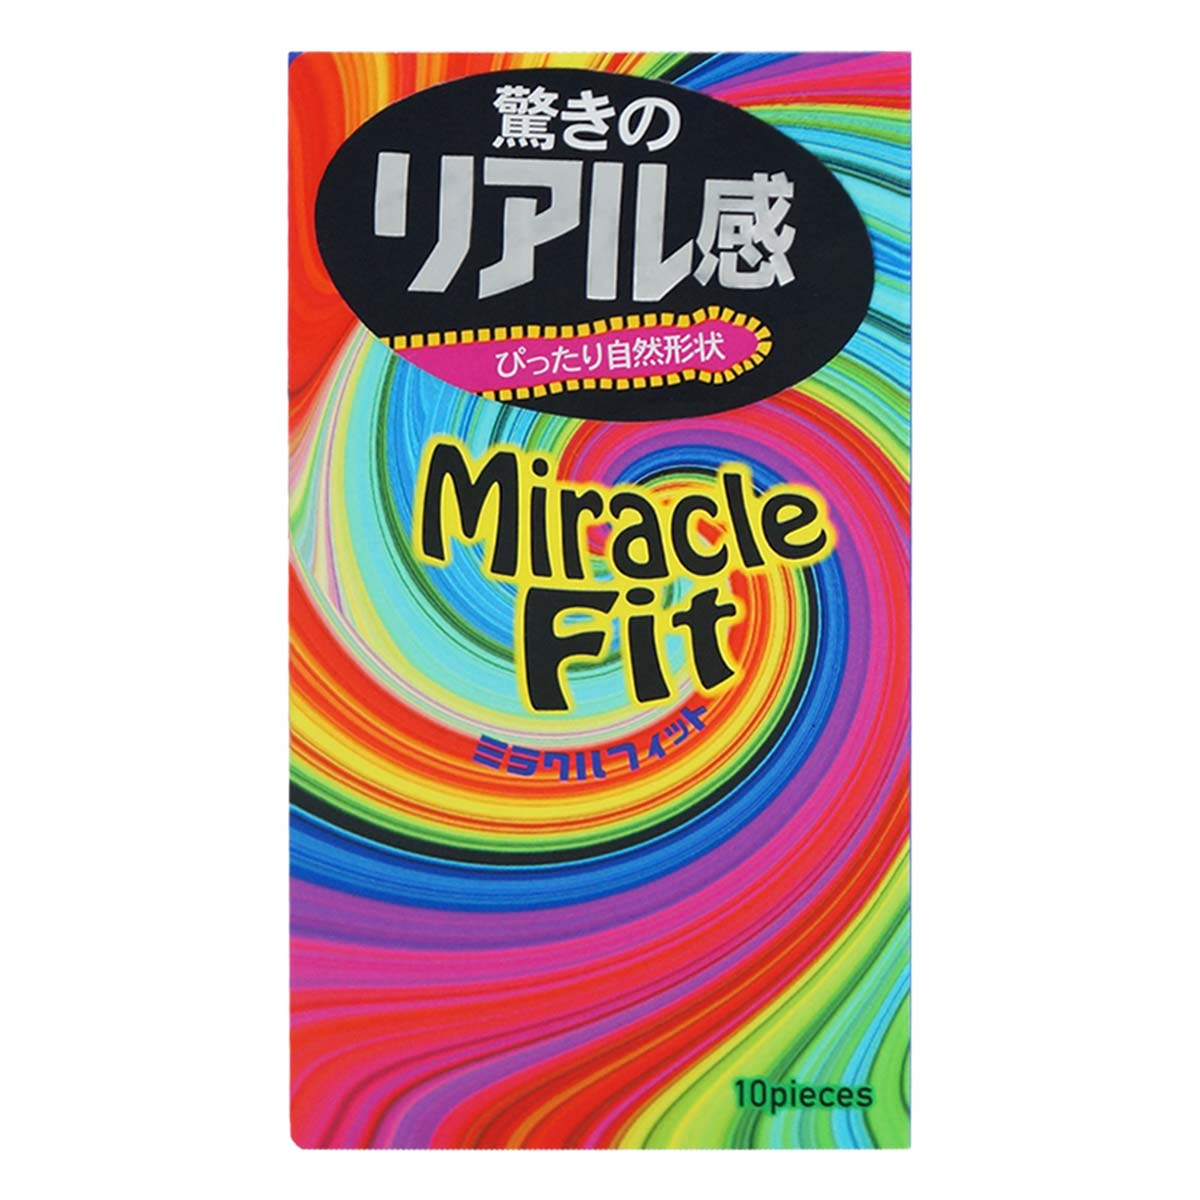 Sagami Miracle Fit 51mm 10's Pack Latex Condom